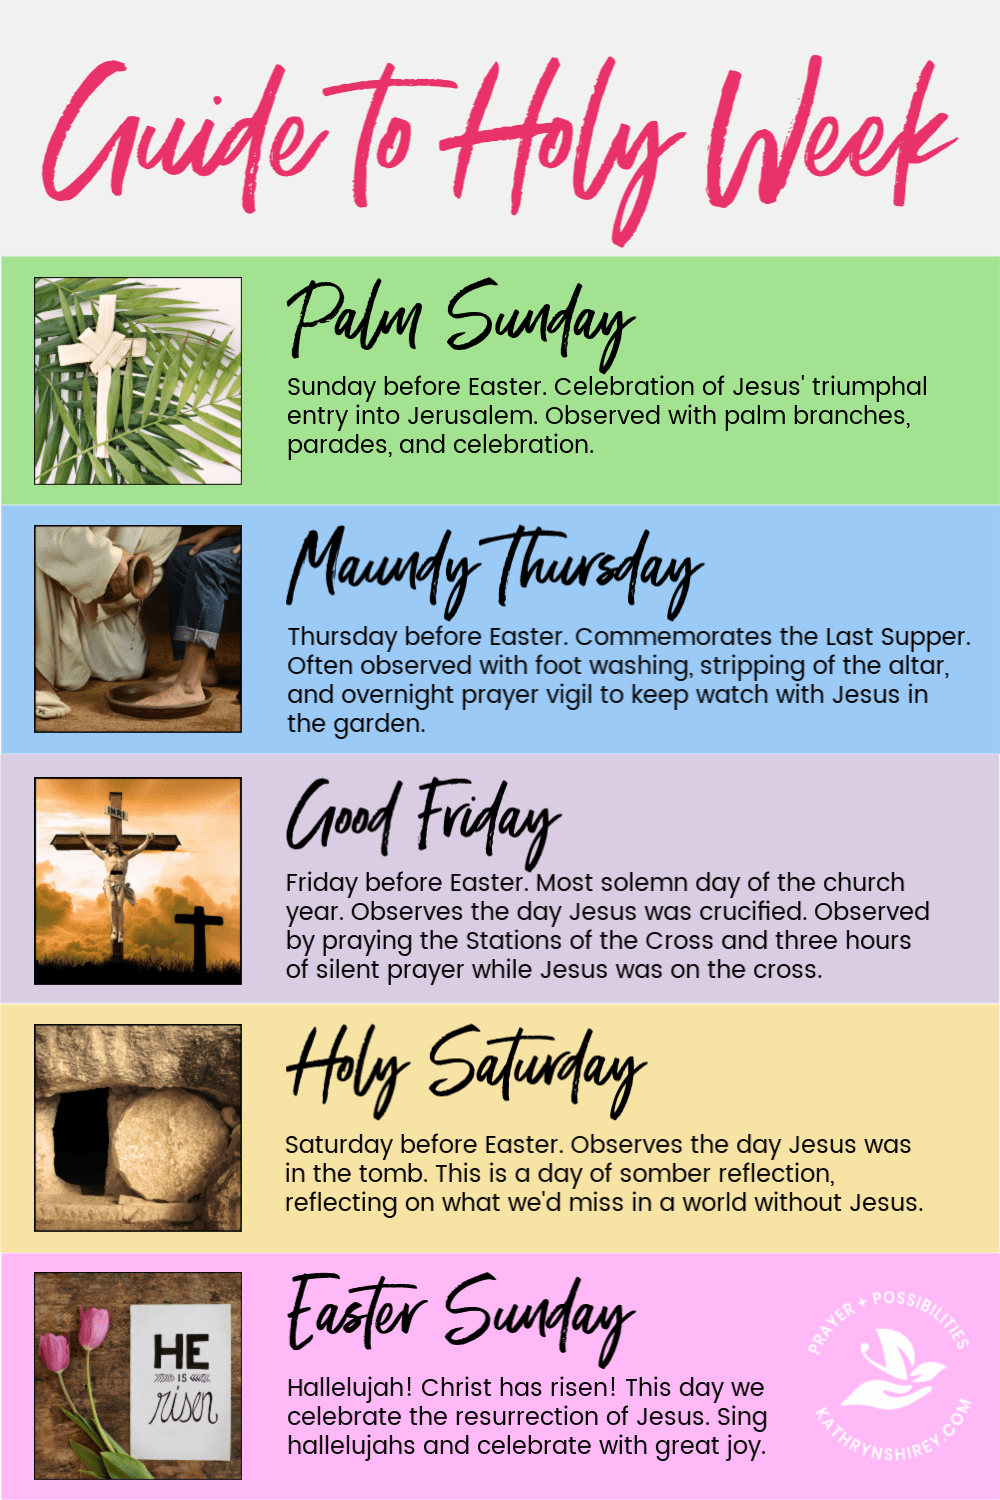 photograph relating to Stations of the Cross Prayers Printable named 10 Holy 7 days Things to do Towards Deliver Easter Excess Content Prayer